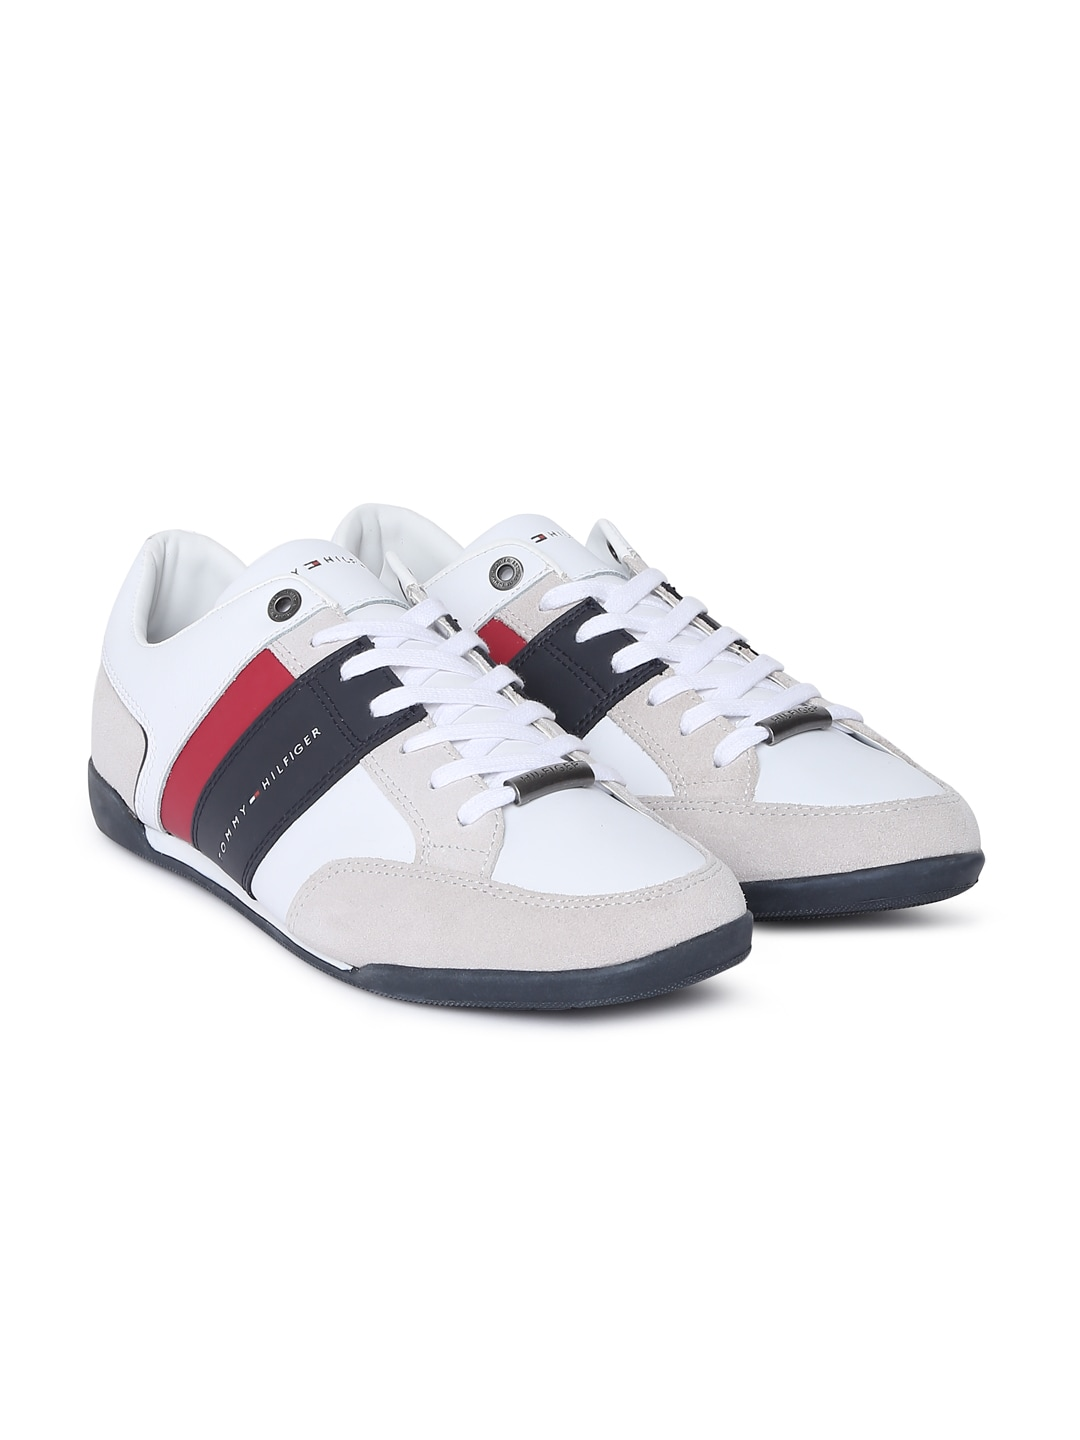 ef8b2718716a   Casual Shoes Sandals - Buy   Casual Shoes Sandals online in India